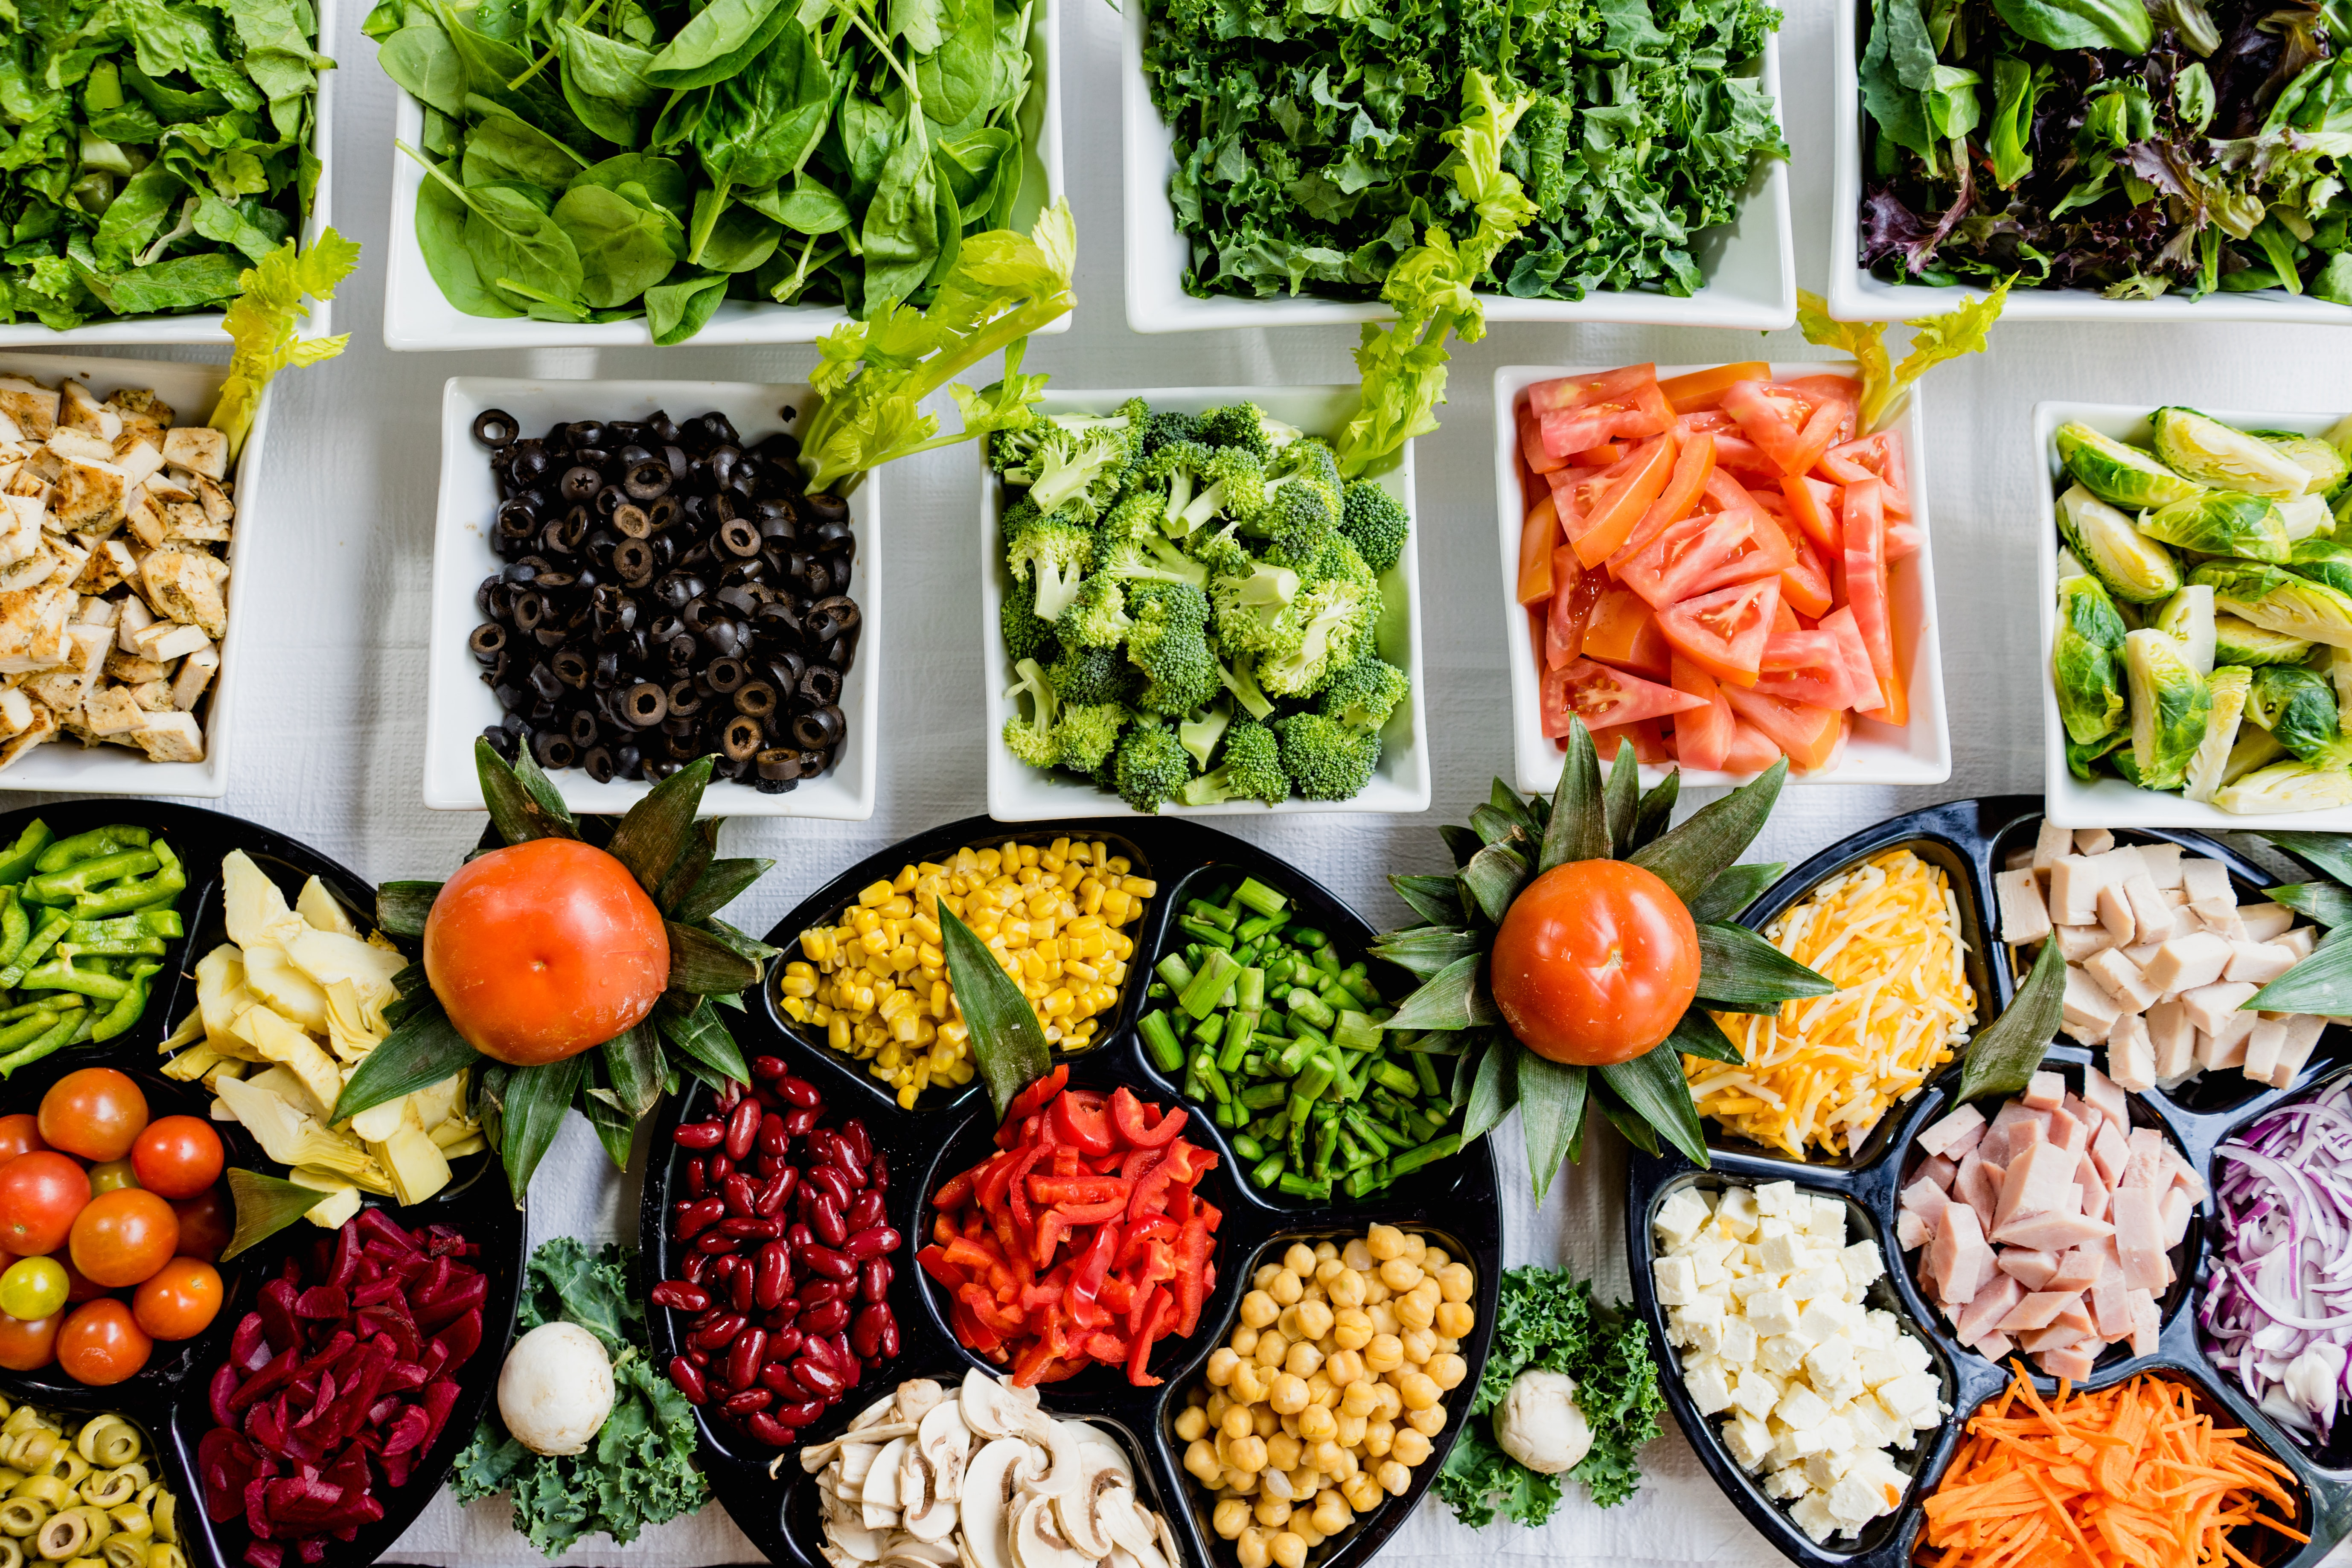 Salad bar with colorful vegetables